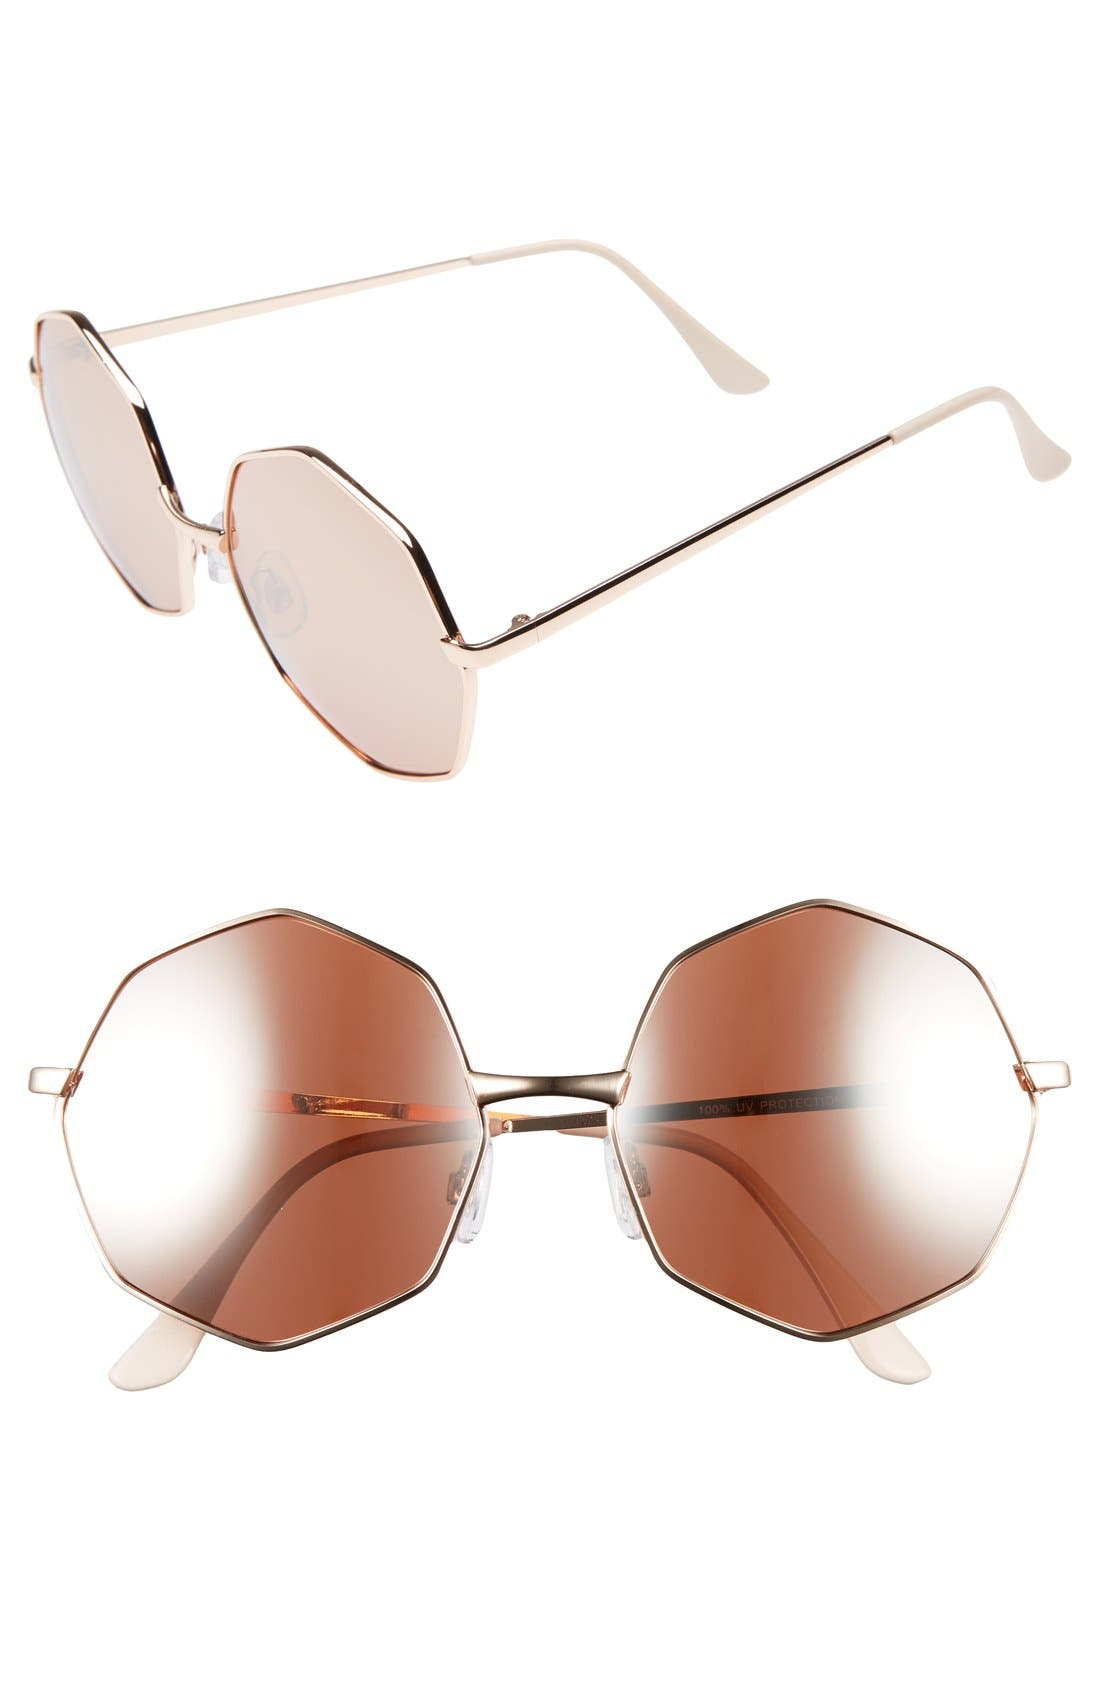 Main Image - BP. 58mm Octagon Metal Sunglasses